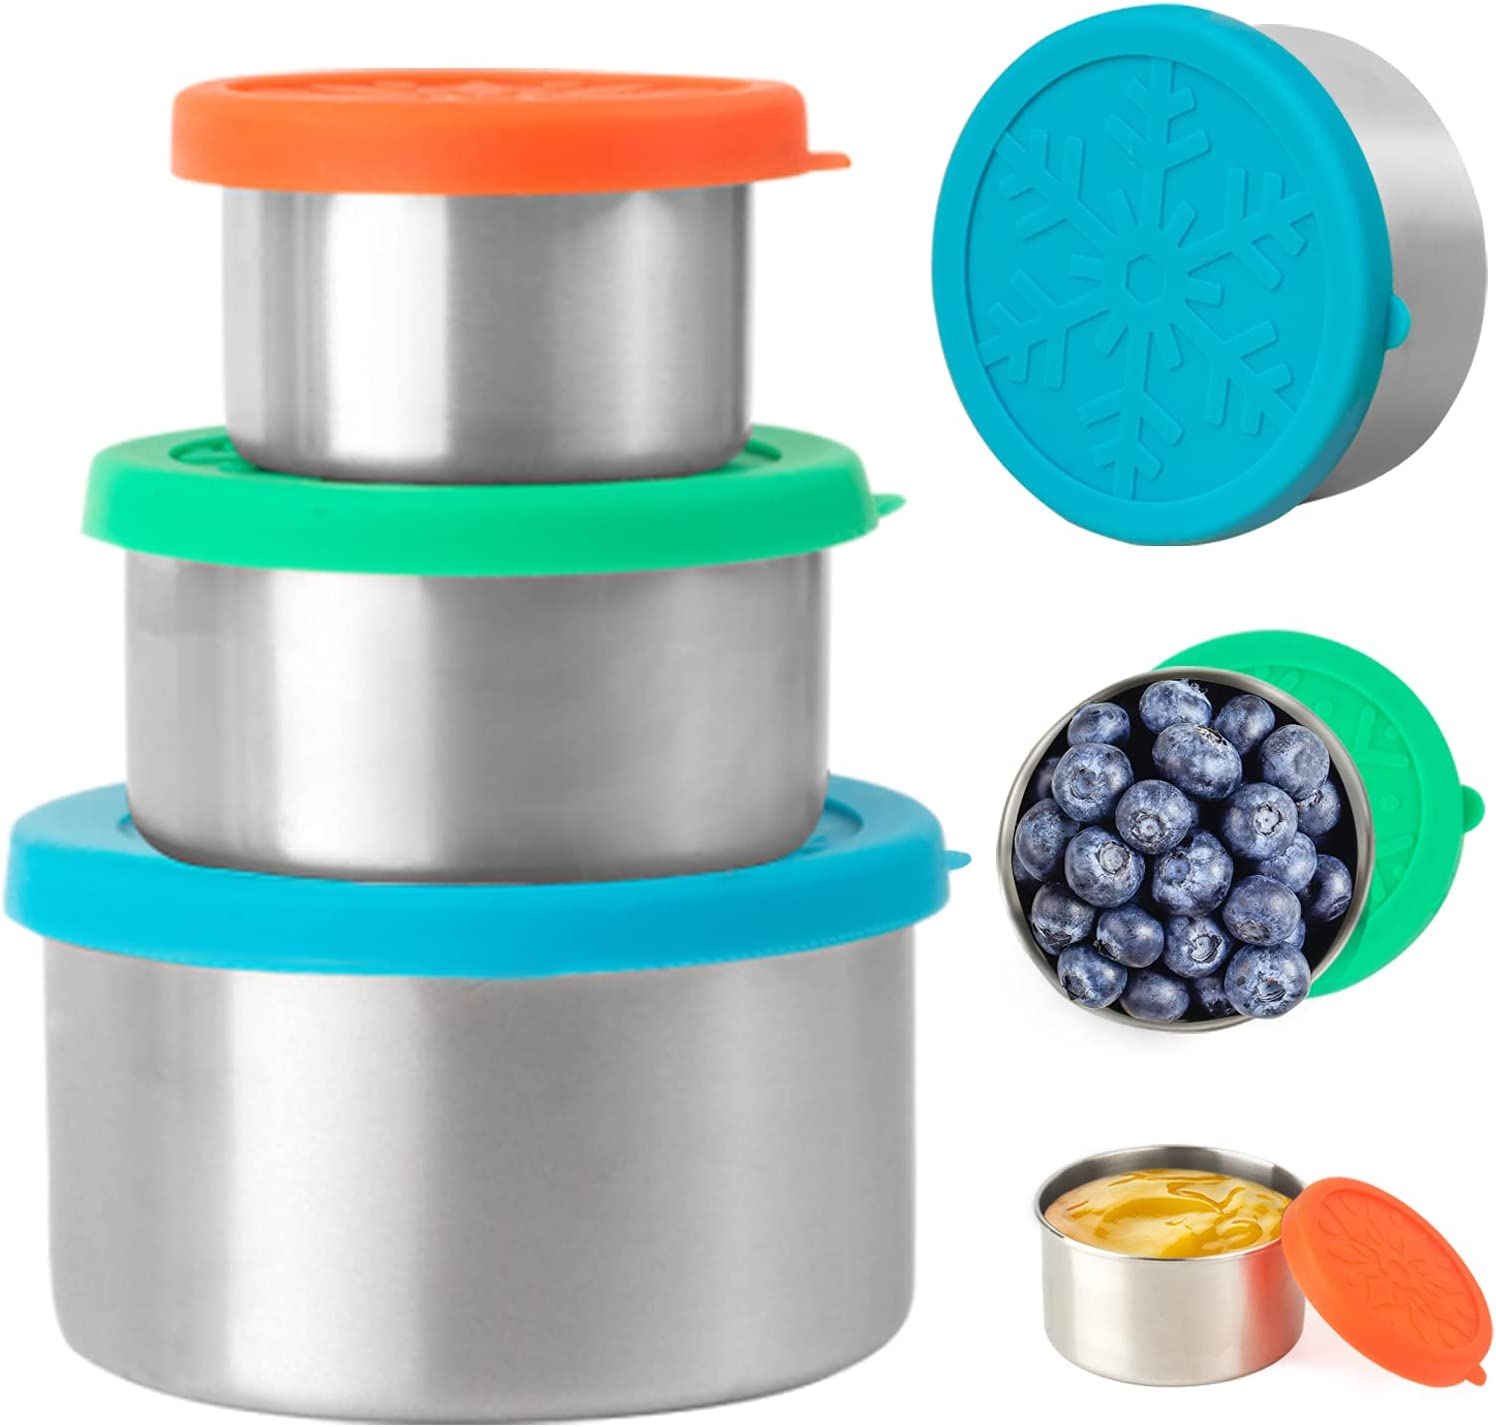 Stainless Steel Food Containers with Lids, KARYHOME Set of 3 Reusable Snack Containers (110 ml, 220ml, 400ml), Leakproof Silicone Lids, Metal Food Storage Containers for Snack, Lunch, Bento, Sauce